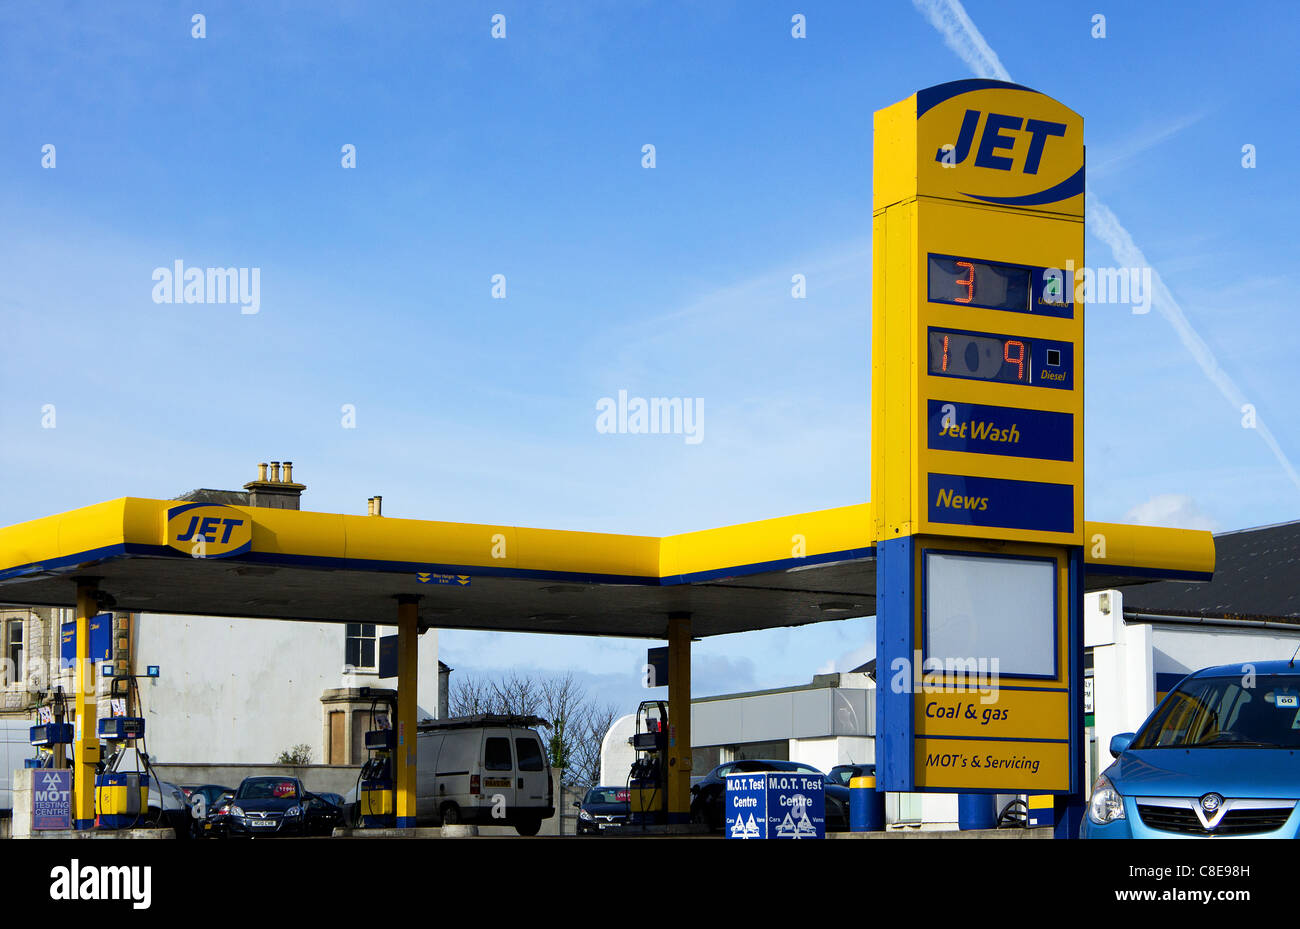 A  ' Jet filling station ' in redruth, cornwall, uk - Stock Image